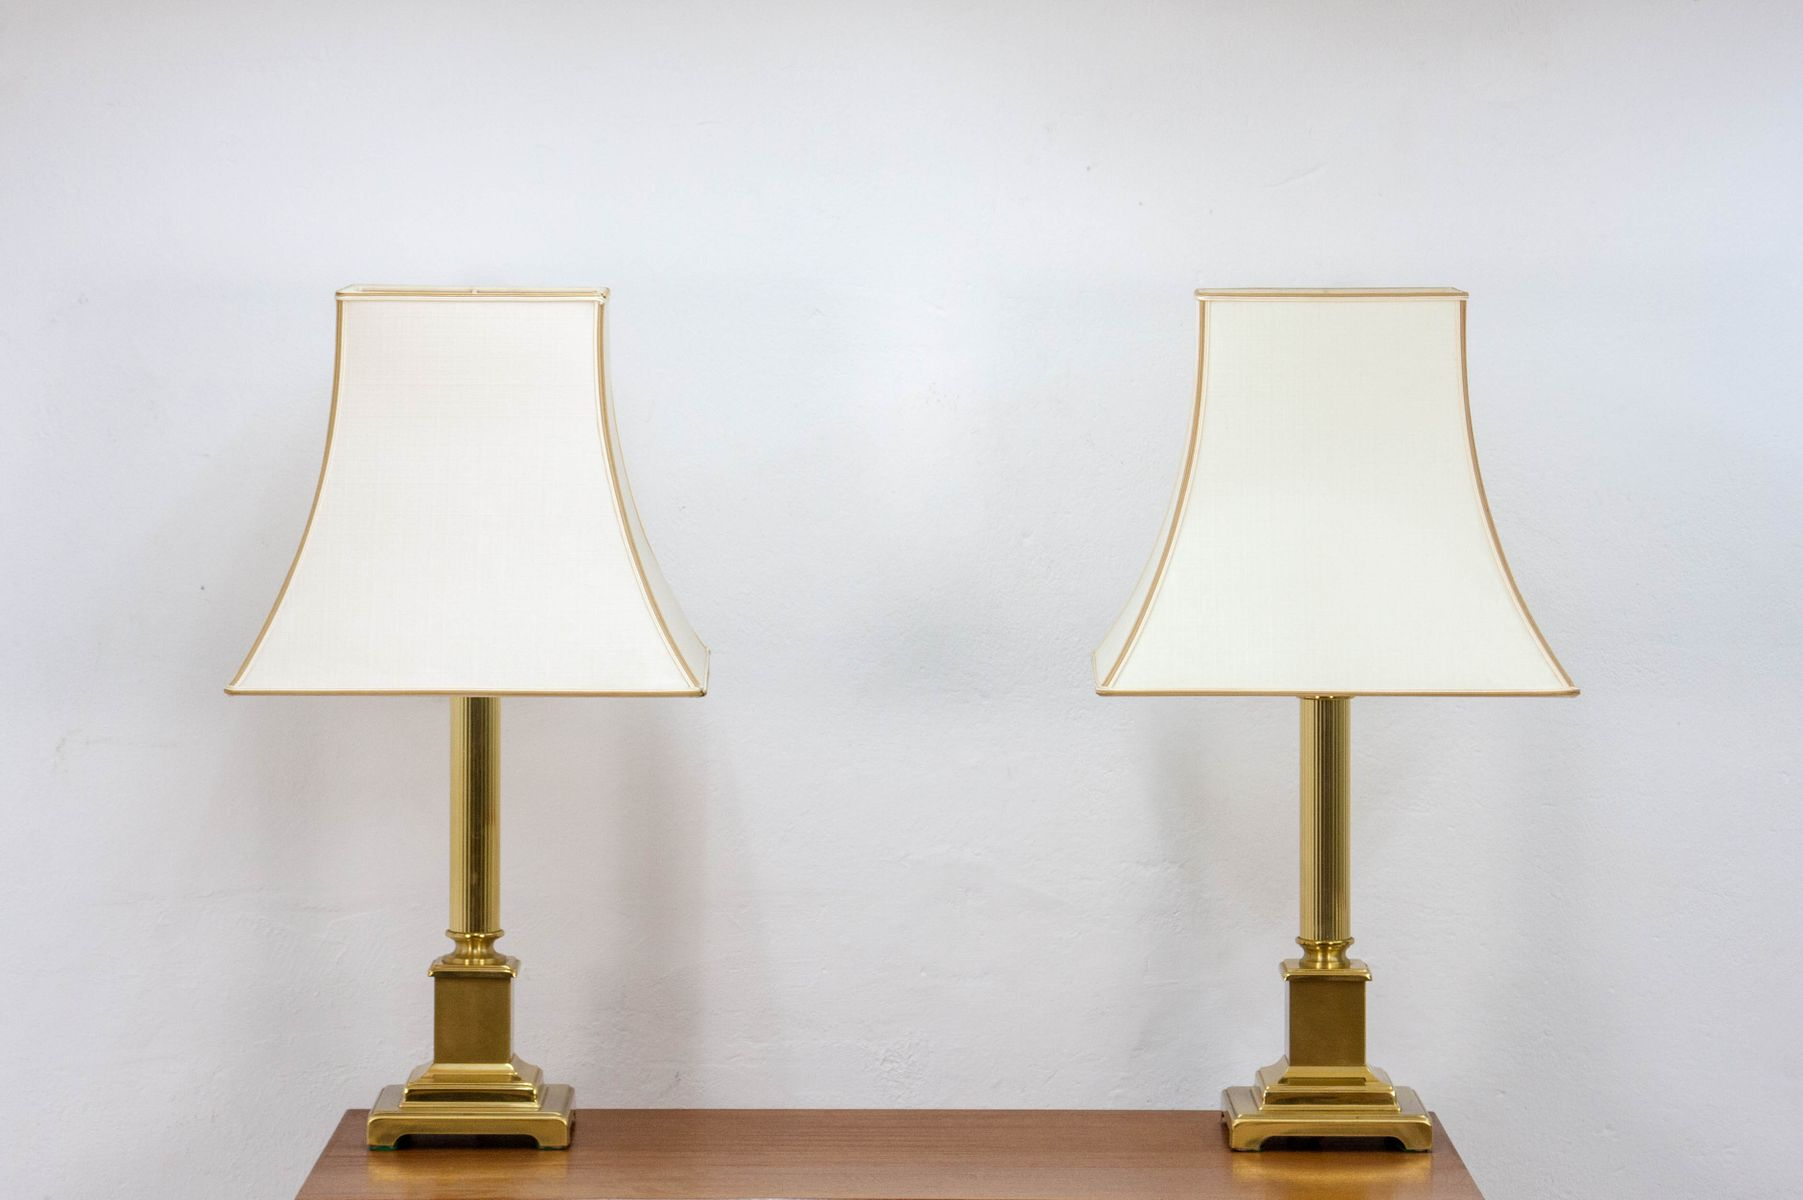 Hollywood Regency Style Brass Table Lamps From Herda, 1970s, Set Of 2